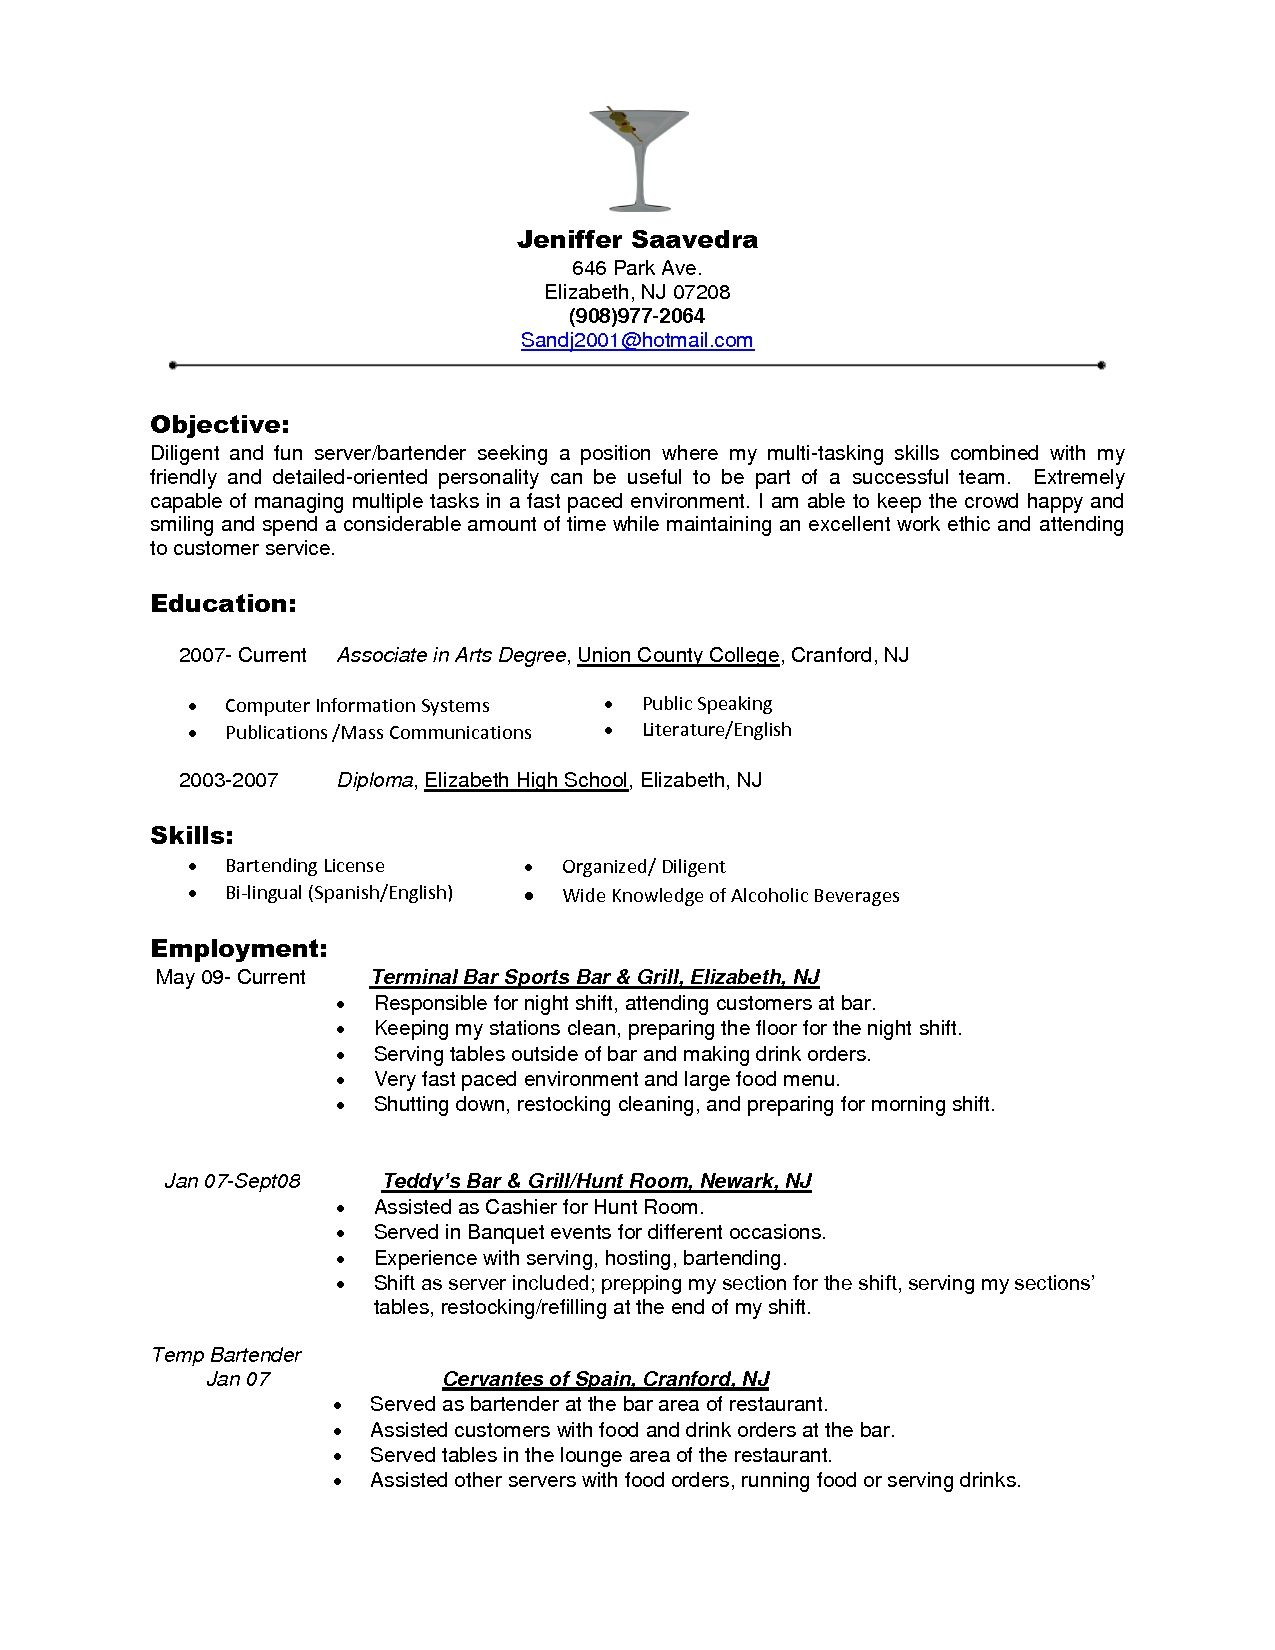 bartender objectives resume bartender objectives resume will give ideas and strategies to develop your own - Resume For Bartender